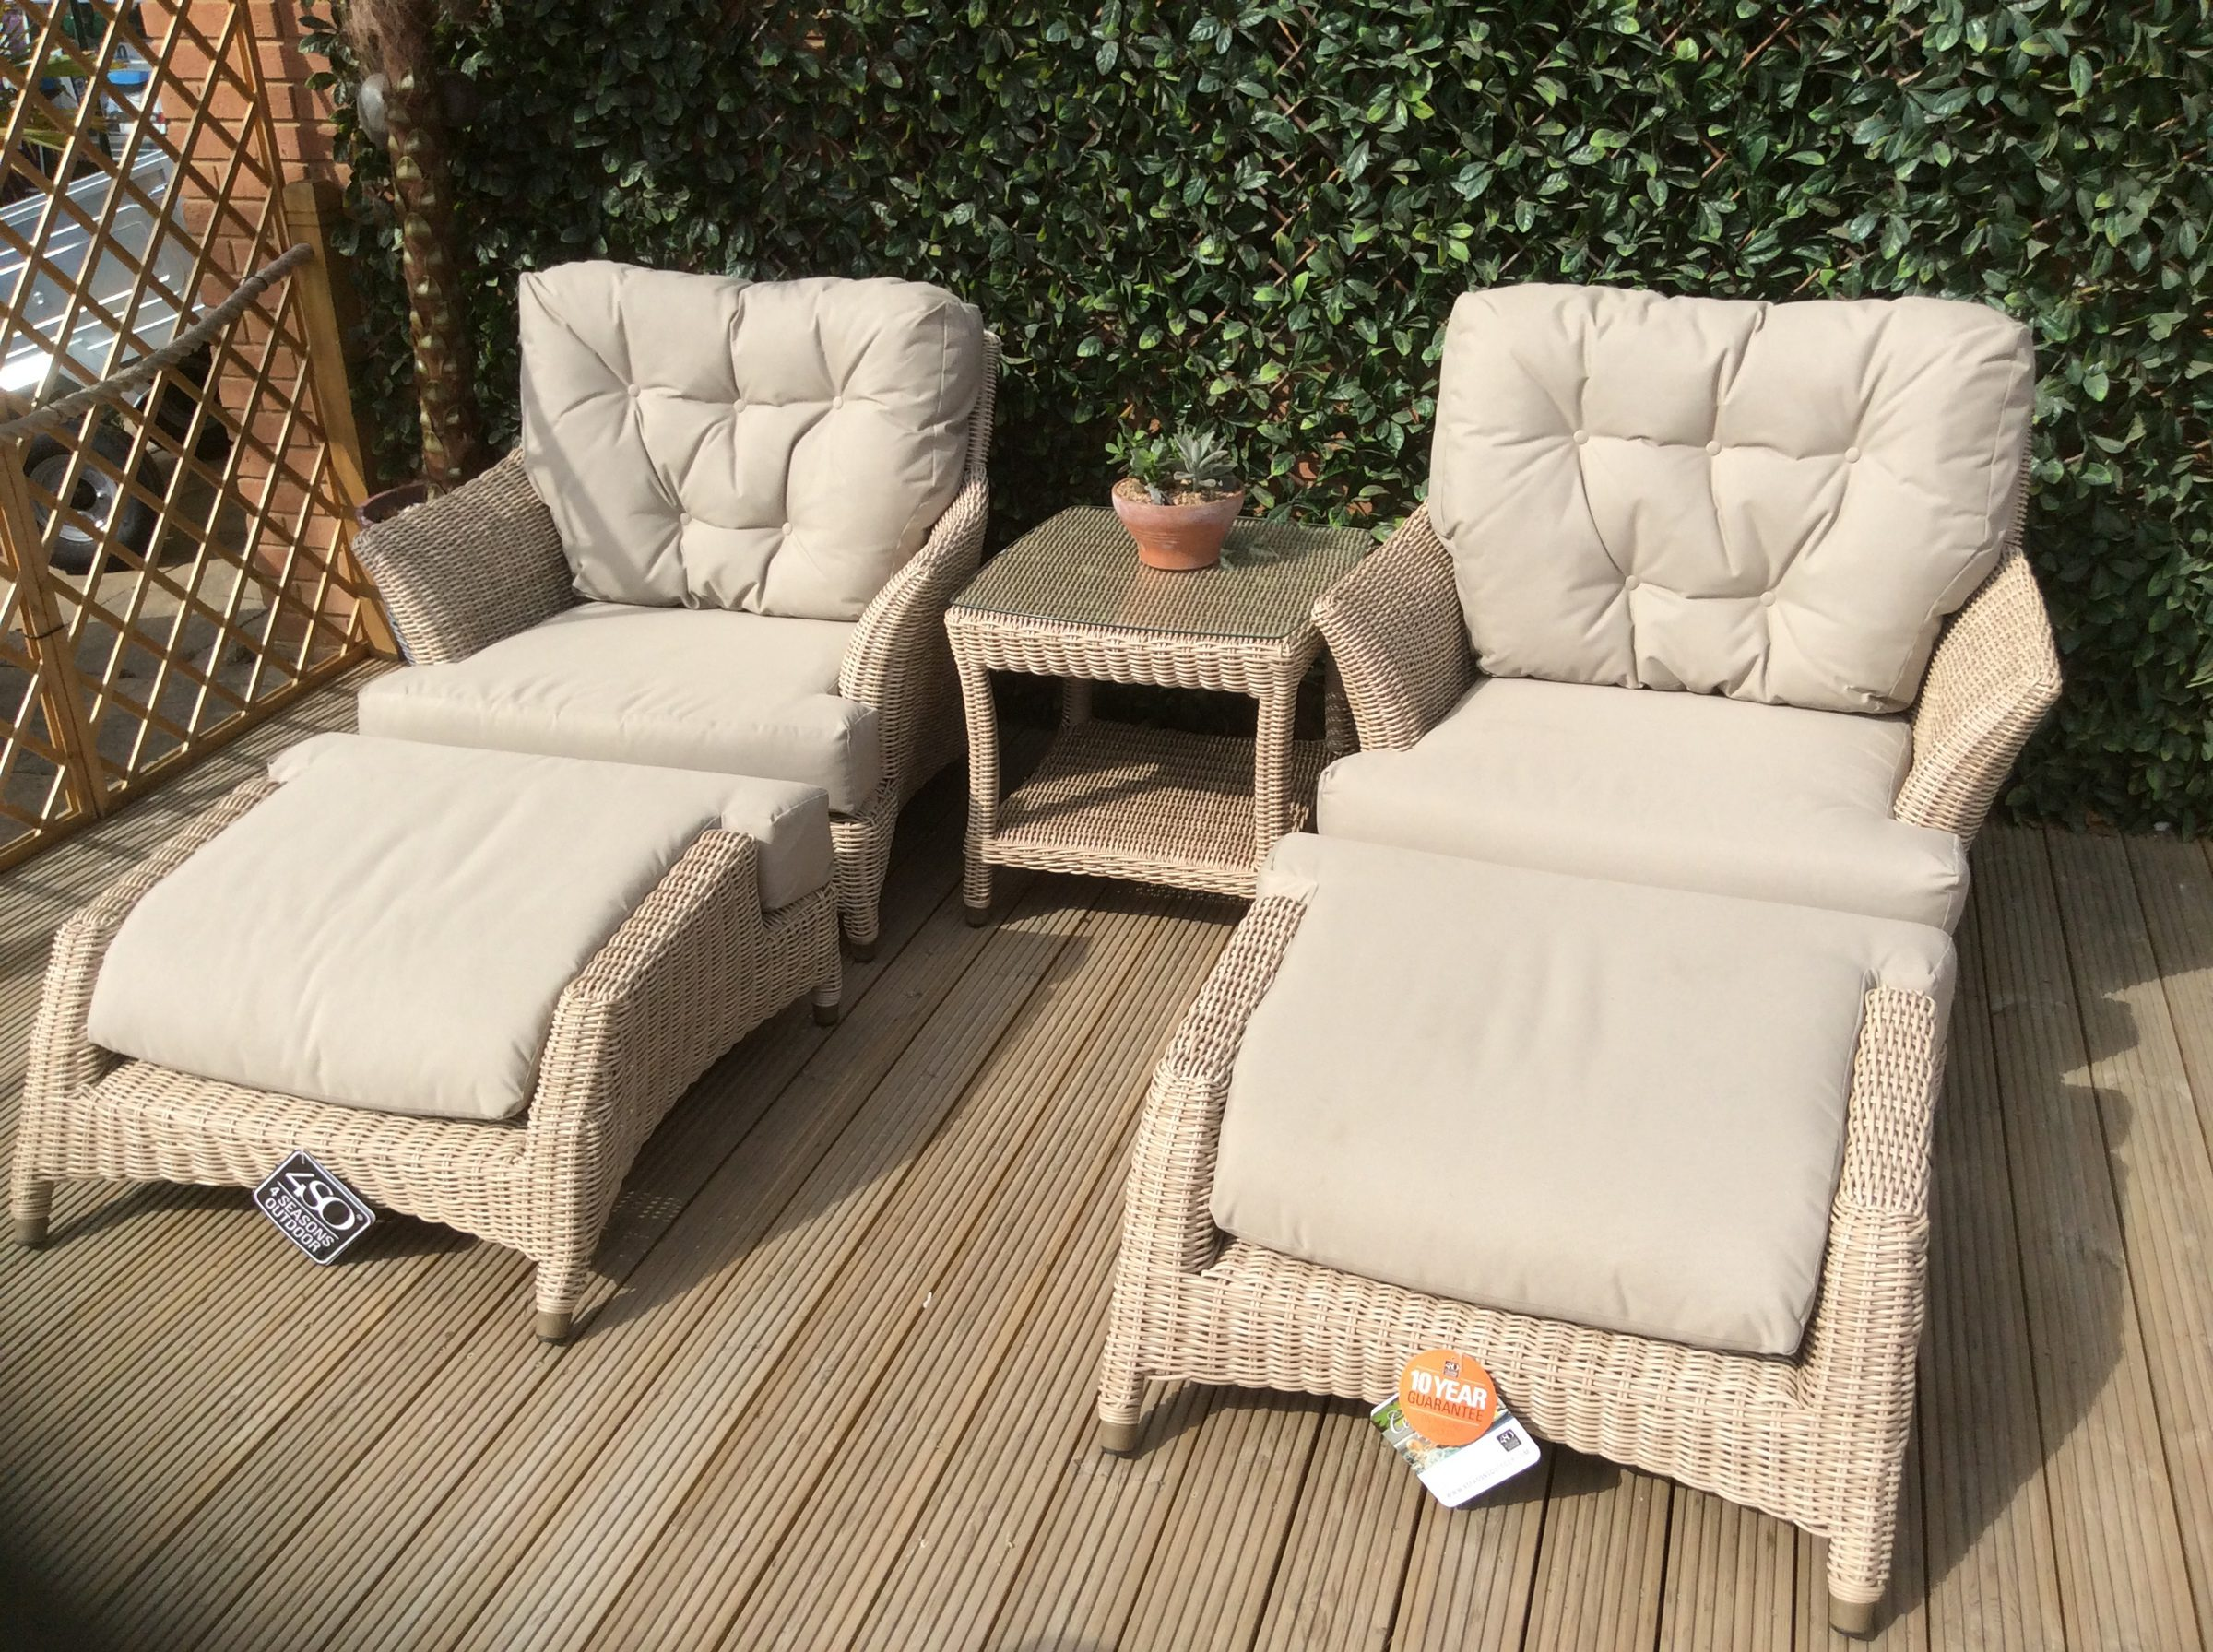 4 Seasons Outdoor Valentine Relaxing Set